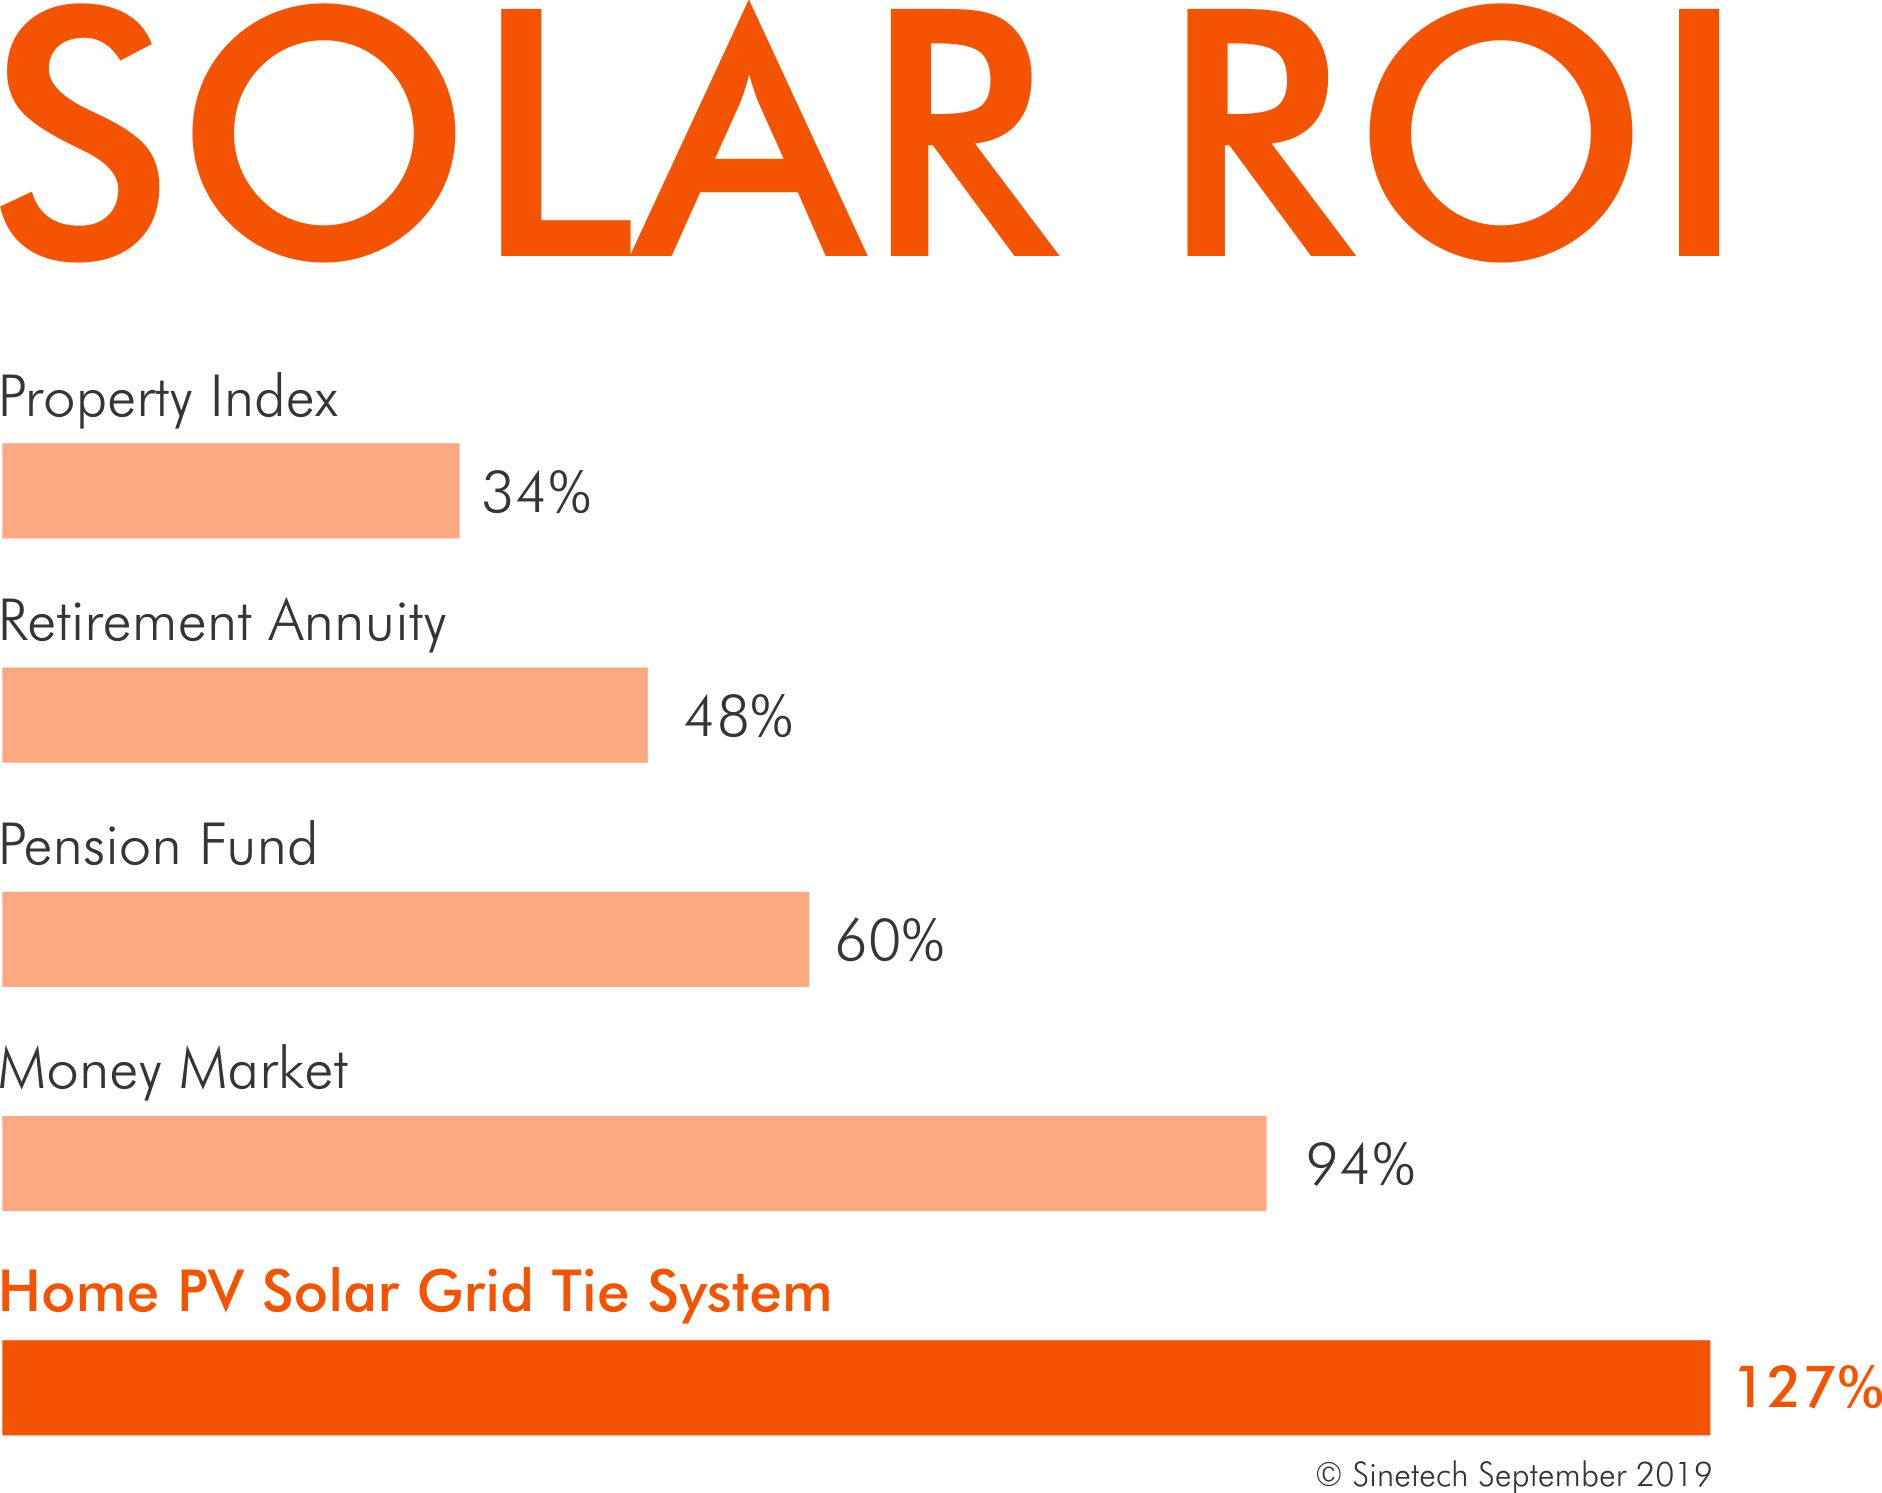 Return on Investment of Solar Power versus other financial avenues